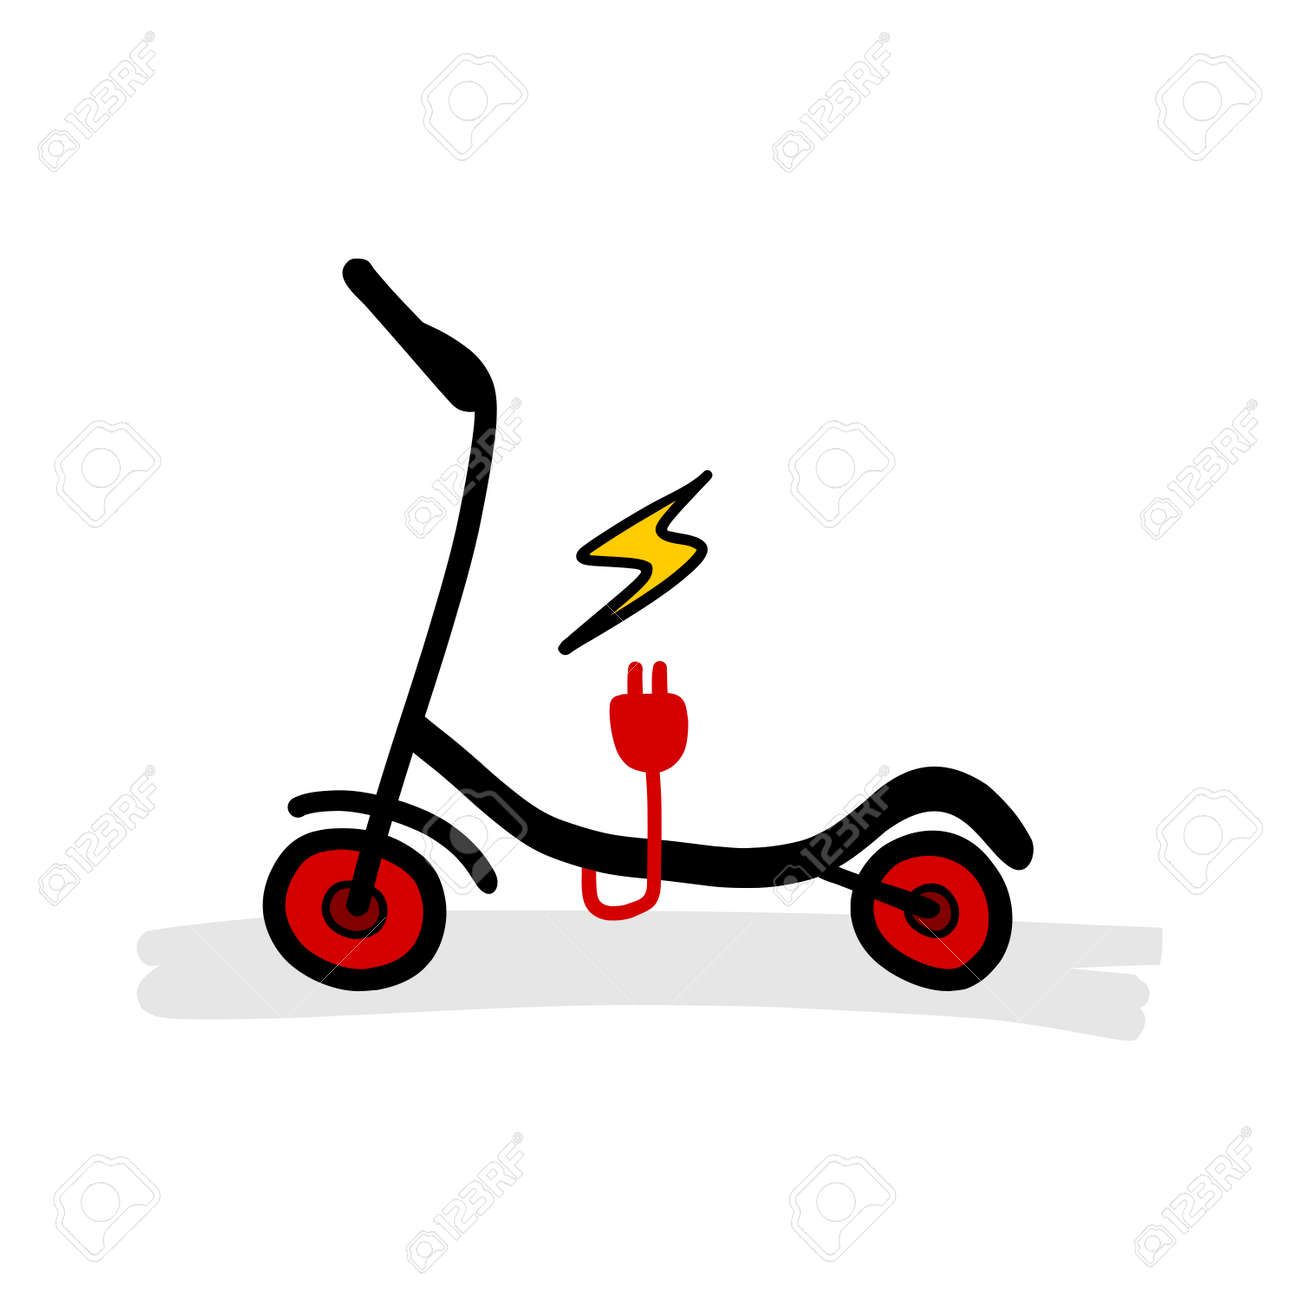 Red And Black Eco Electric Scooter Cartoon Illustration Hand Royalty Free Cliparts Vectors And Stock Illustration Image 150540584